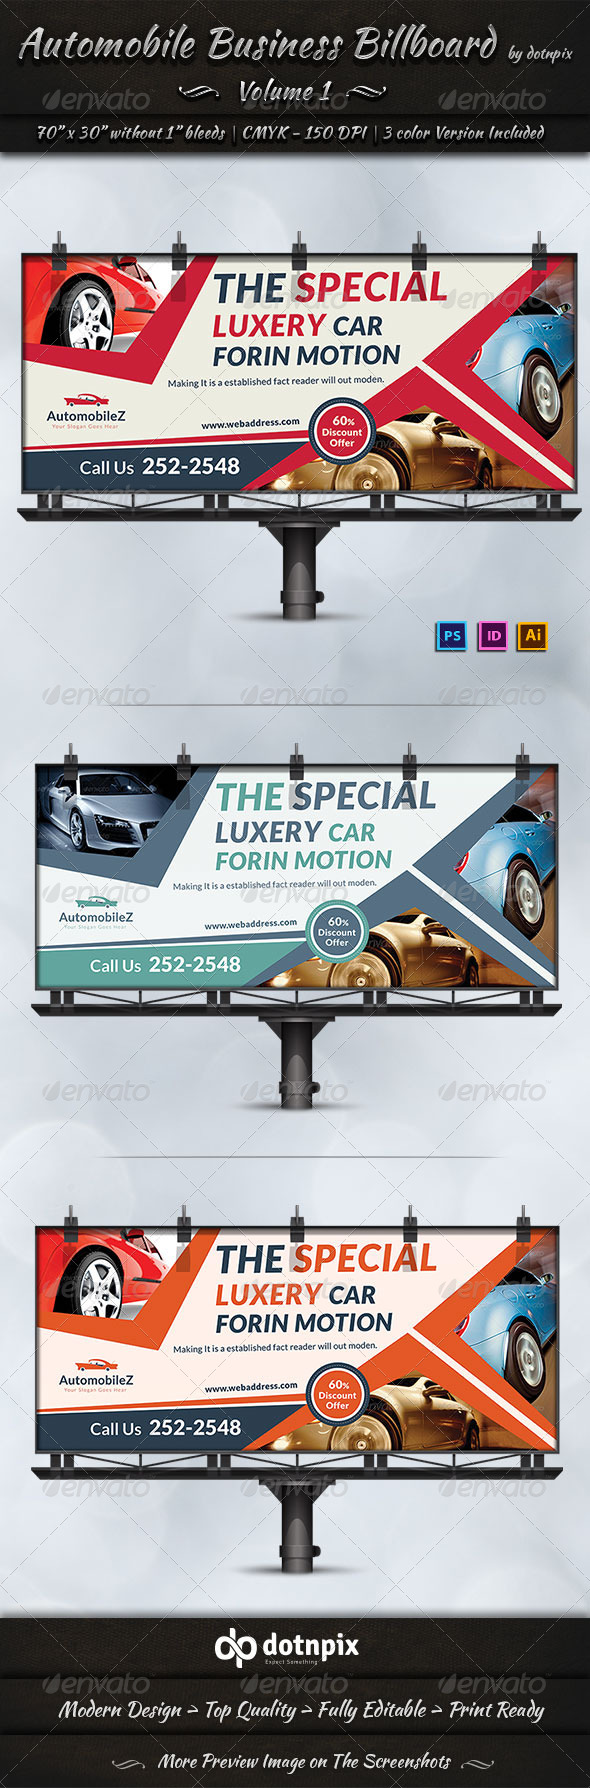 GraphicRiver Automobile Business Billboard Volume 1 6965378